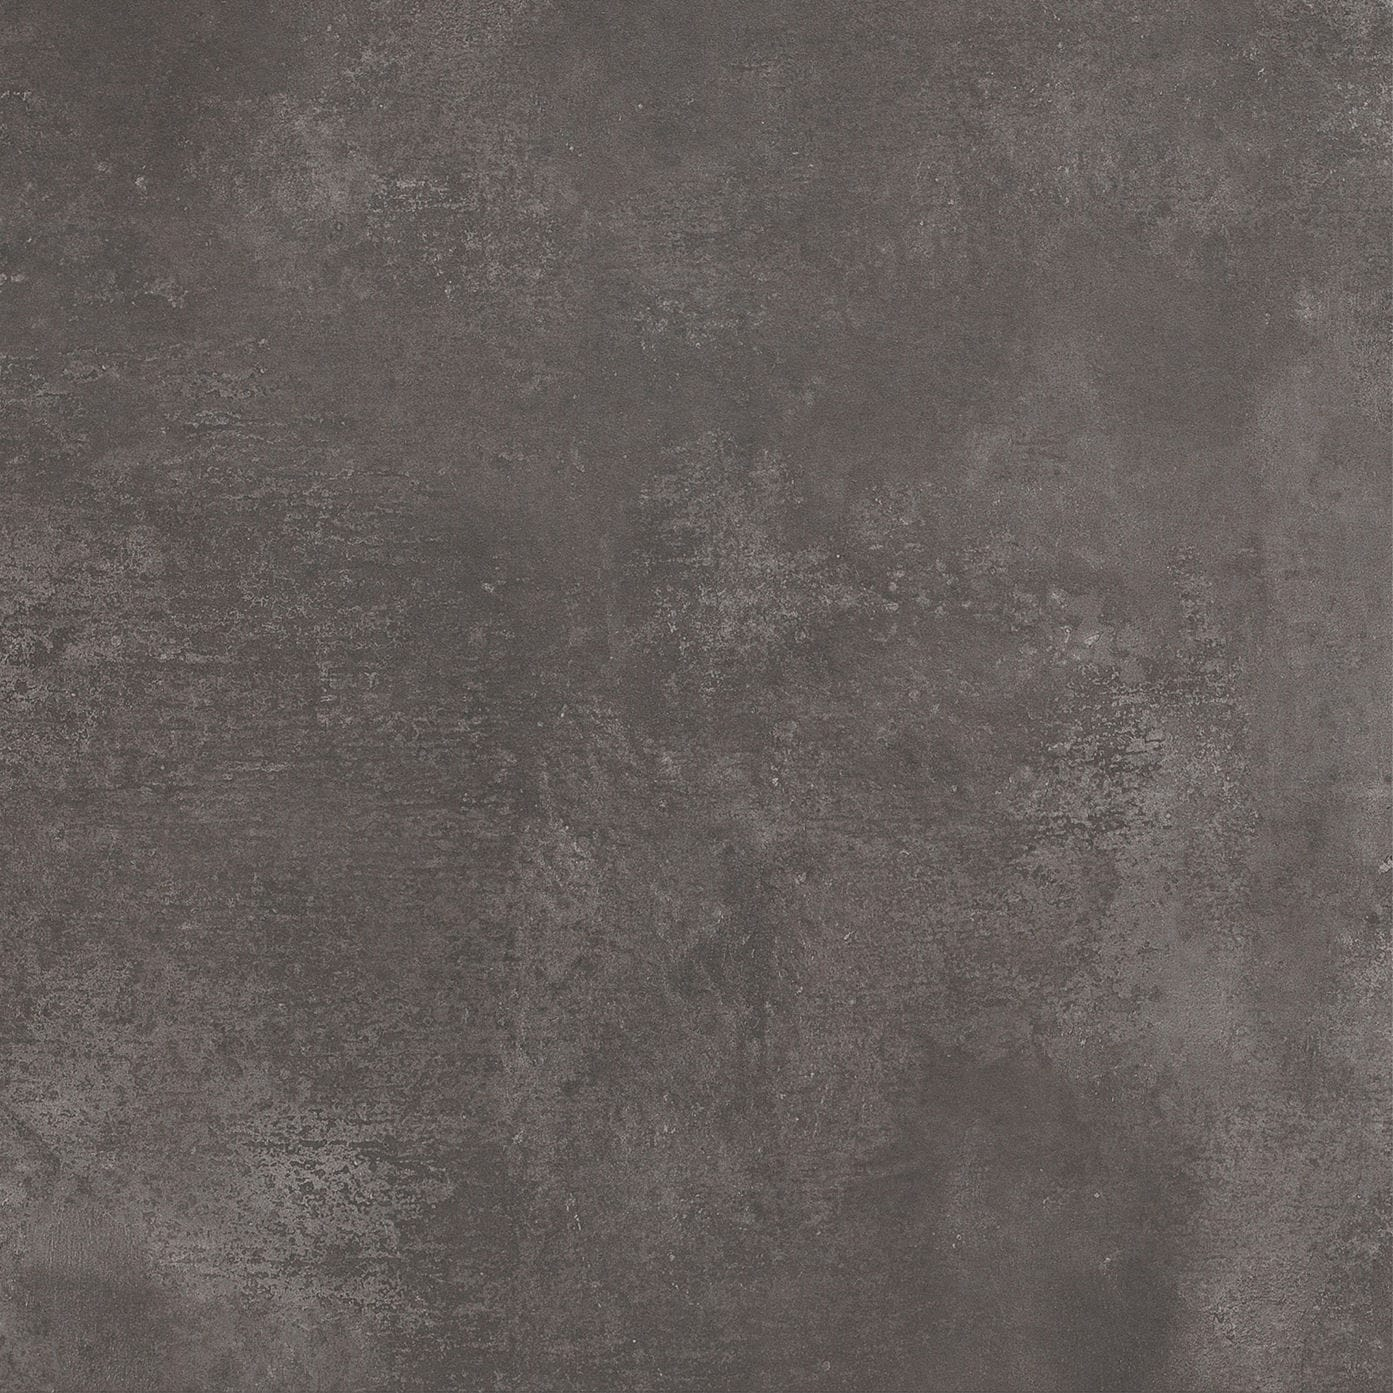 Urban Cement Grey Stone Effect Ceramic Wall Floor Tile: Cemento Dark Grey Matt Porcelain Tile